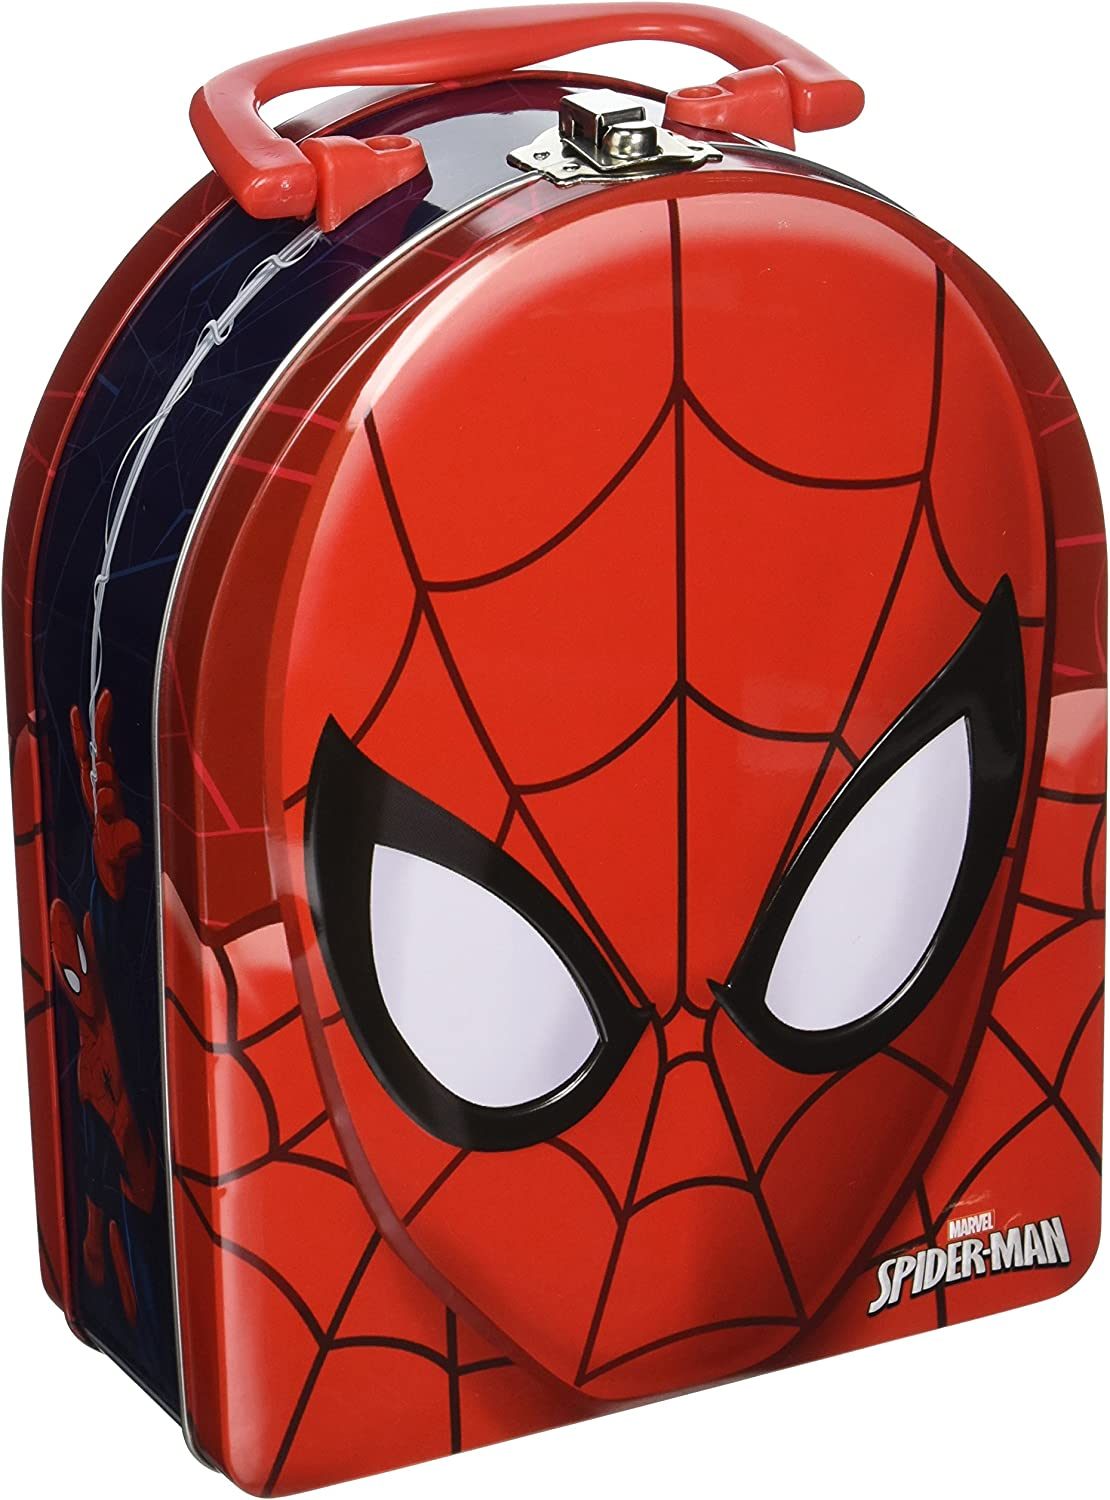 The Tin Box Company Spider-Man Head Shaped Tin Carry All with Handle